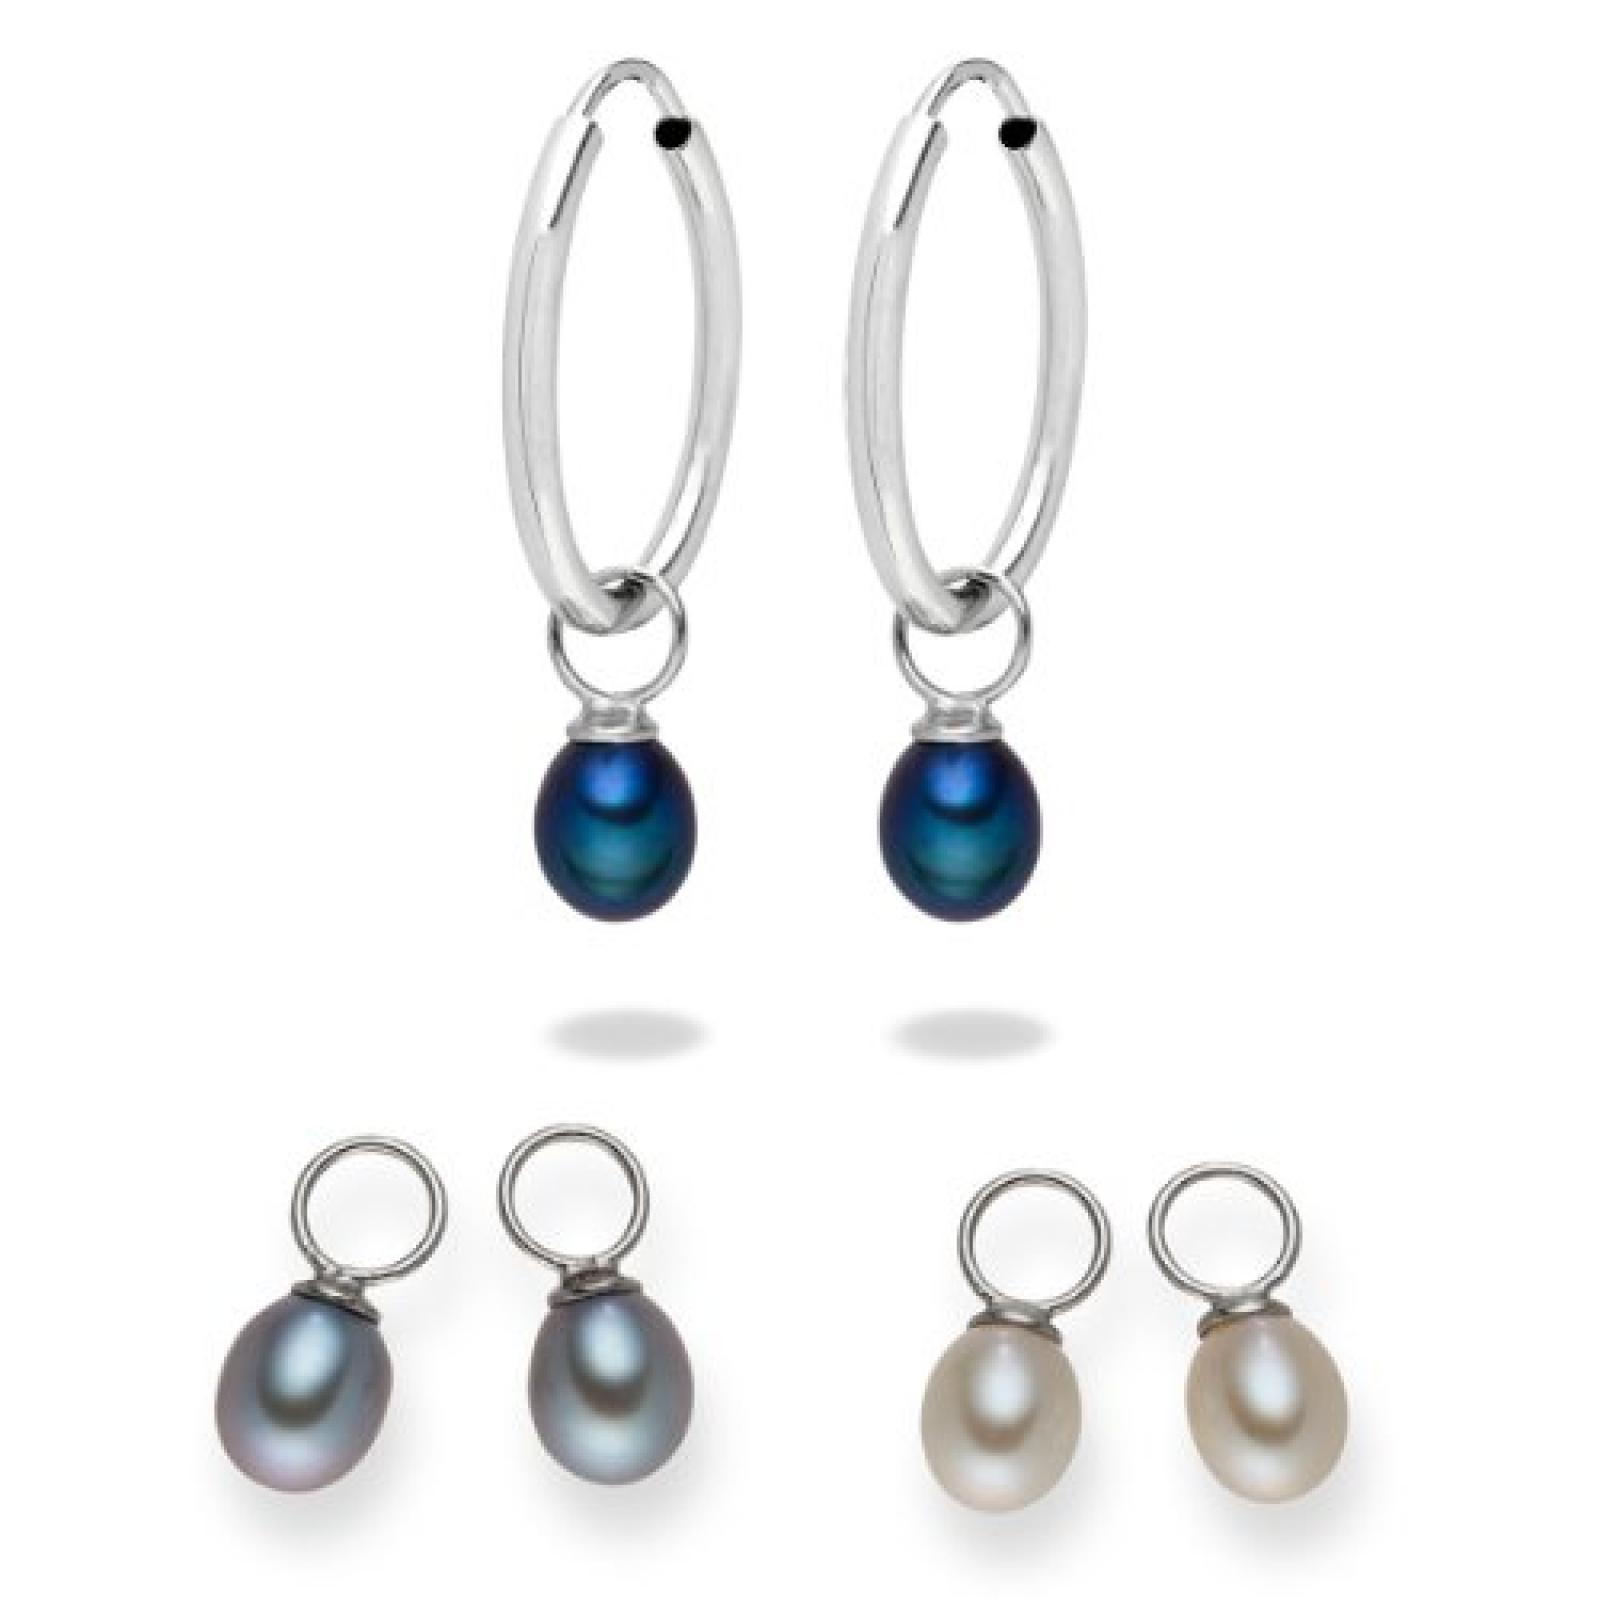 Valero Pearls Fashion Collection Damen-Creolen Süßwasser-Zuchtperlen weiß / silber / pfauenblau 925 Sterlingsilber 60840011